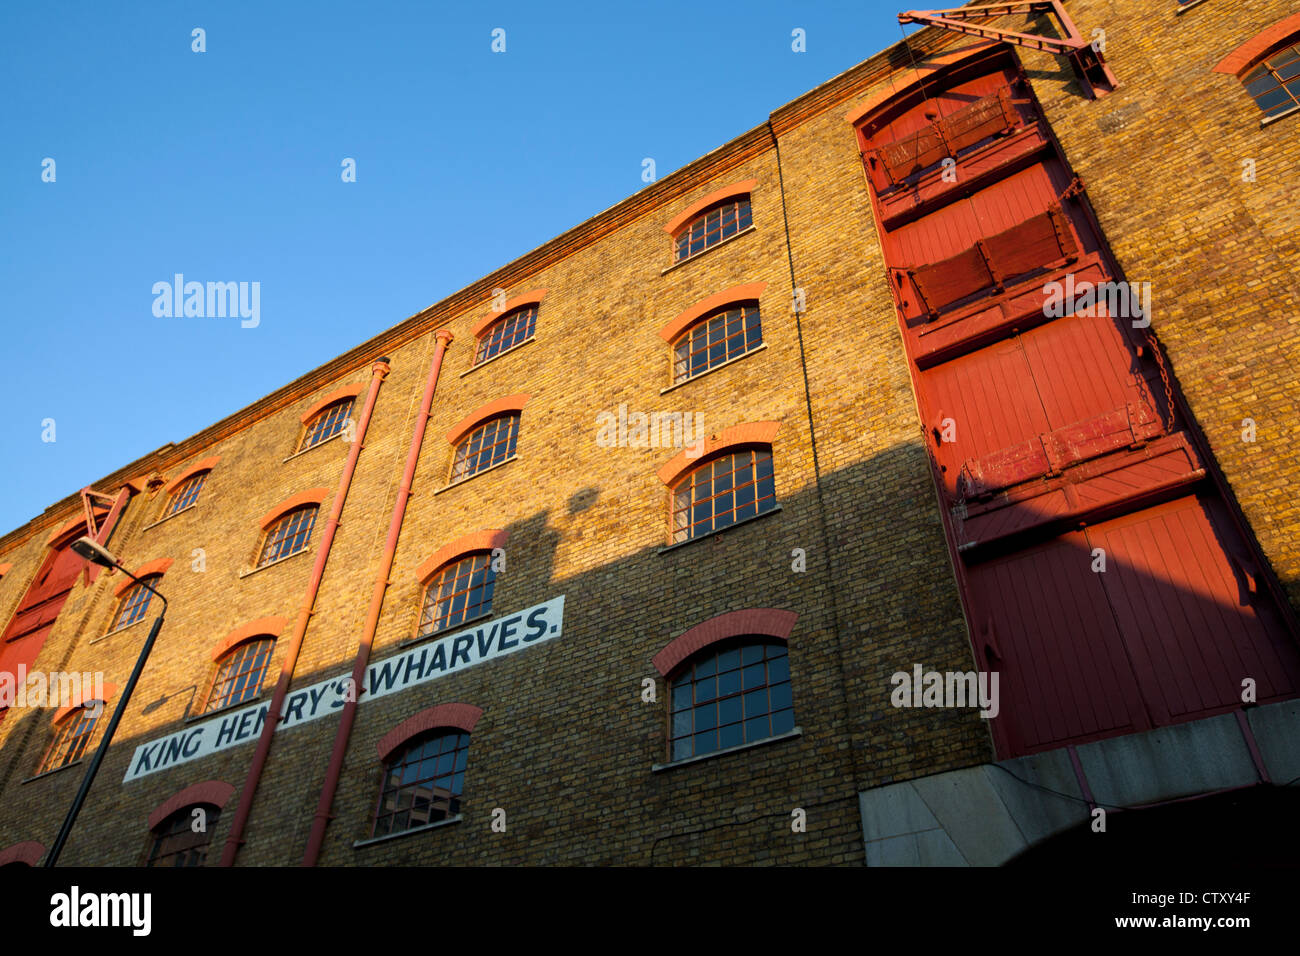 King Henry's Wharves, Wapping High Street, Wapping, London, England, UK - Stock Image